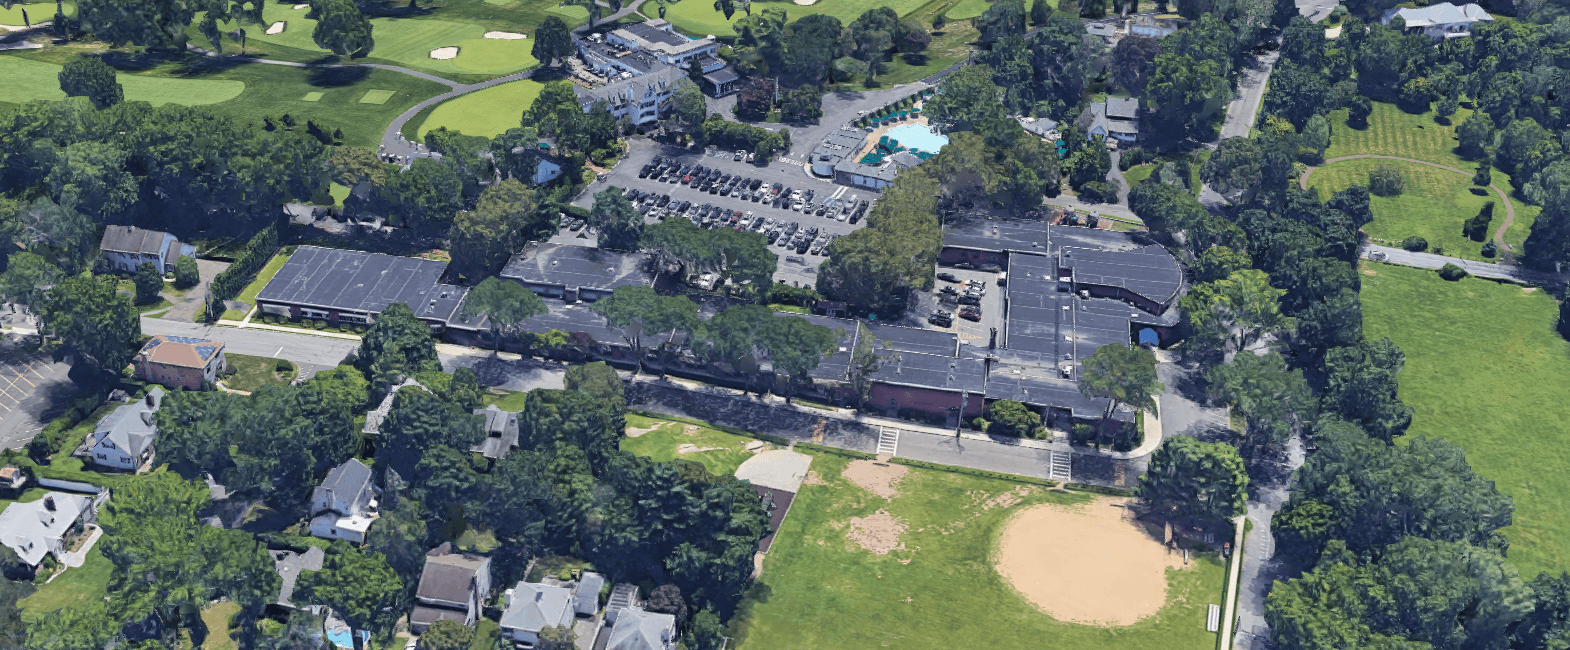 William E Cottle Elementary School in the Tuckahoe Union Free School District in Eastchester, New York